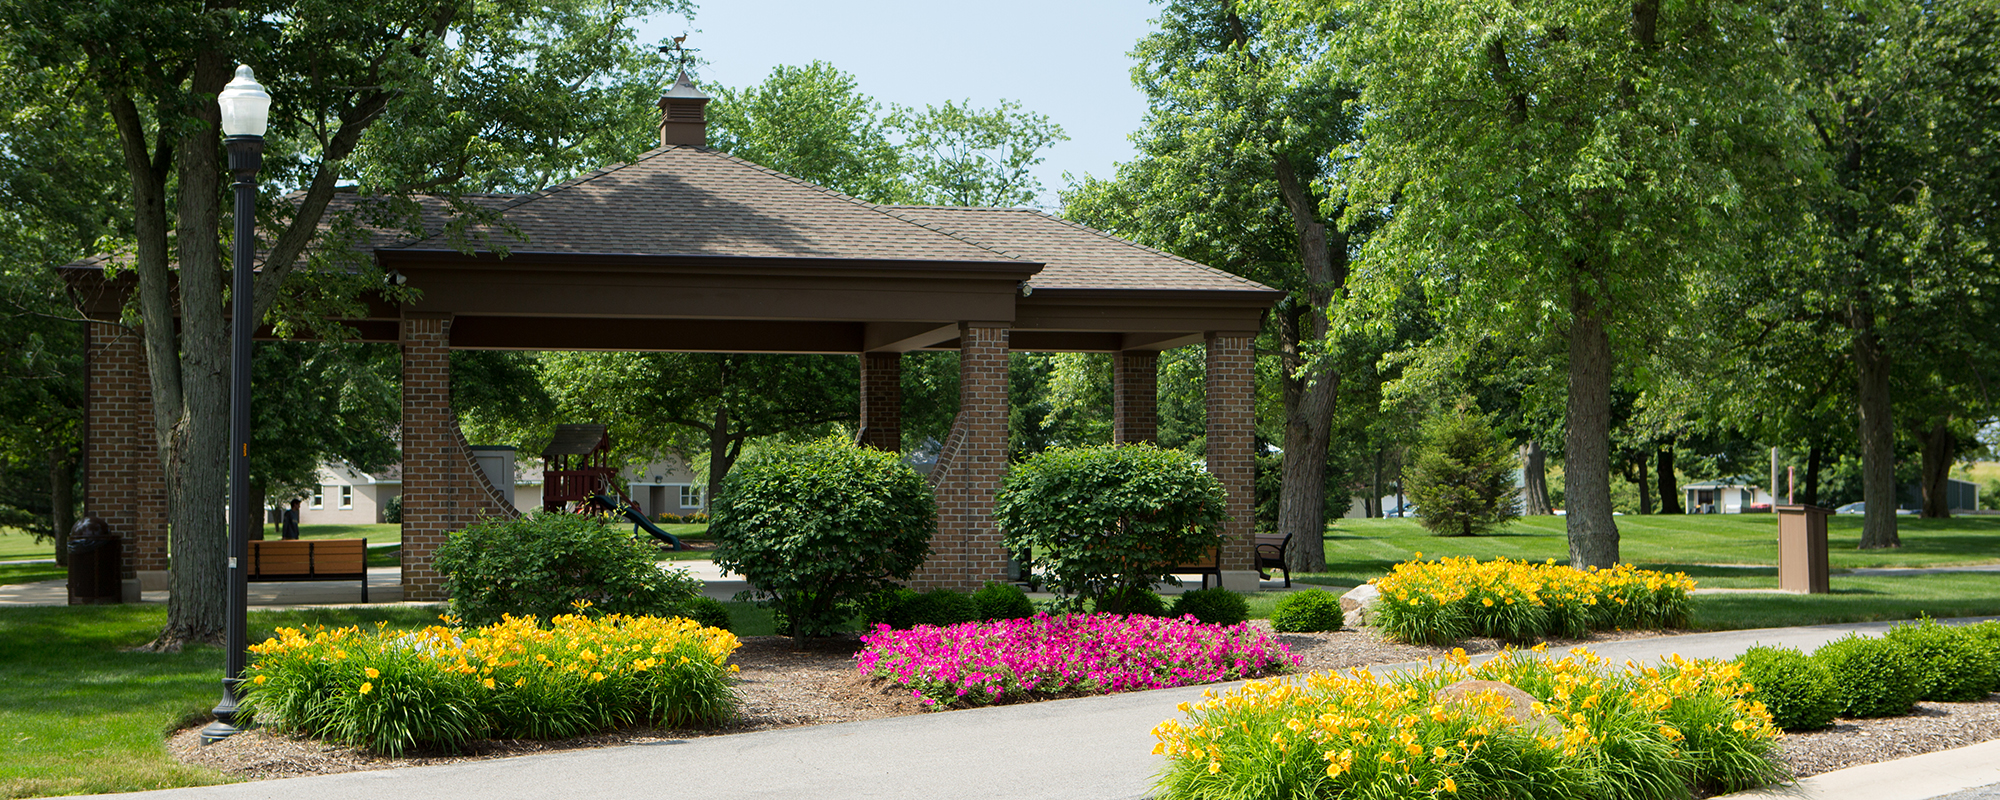 Garden gazebo surrounded by flowers